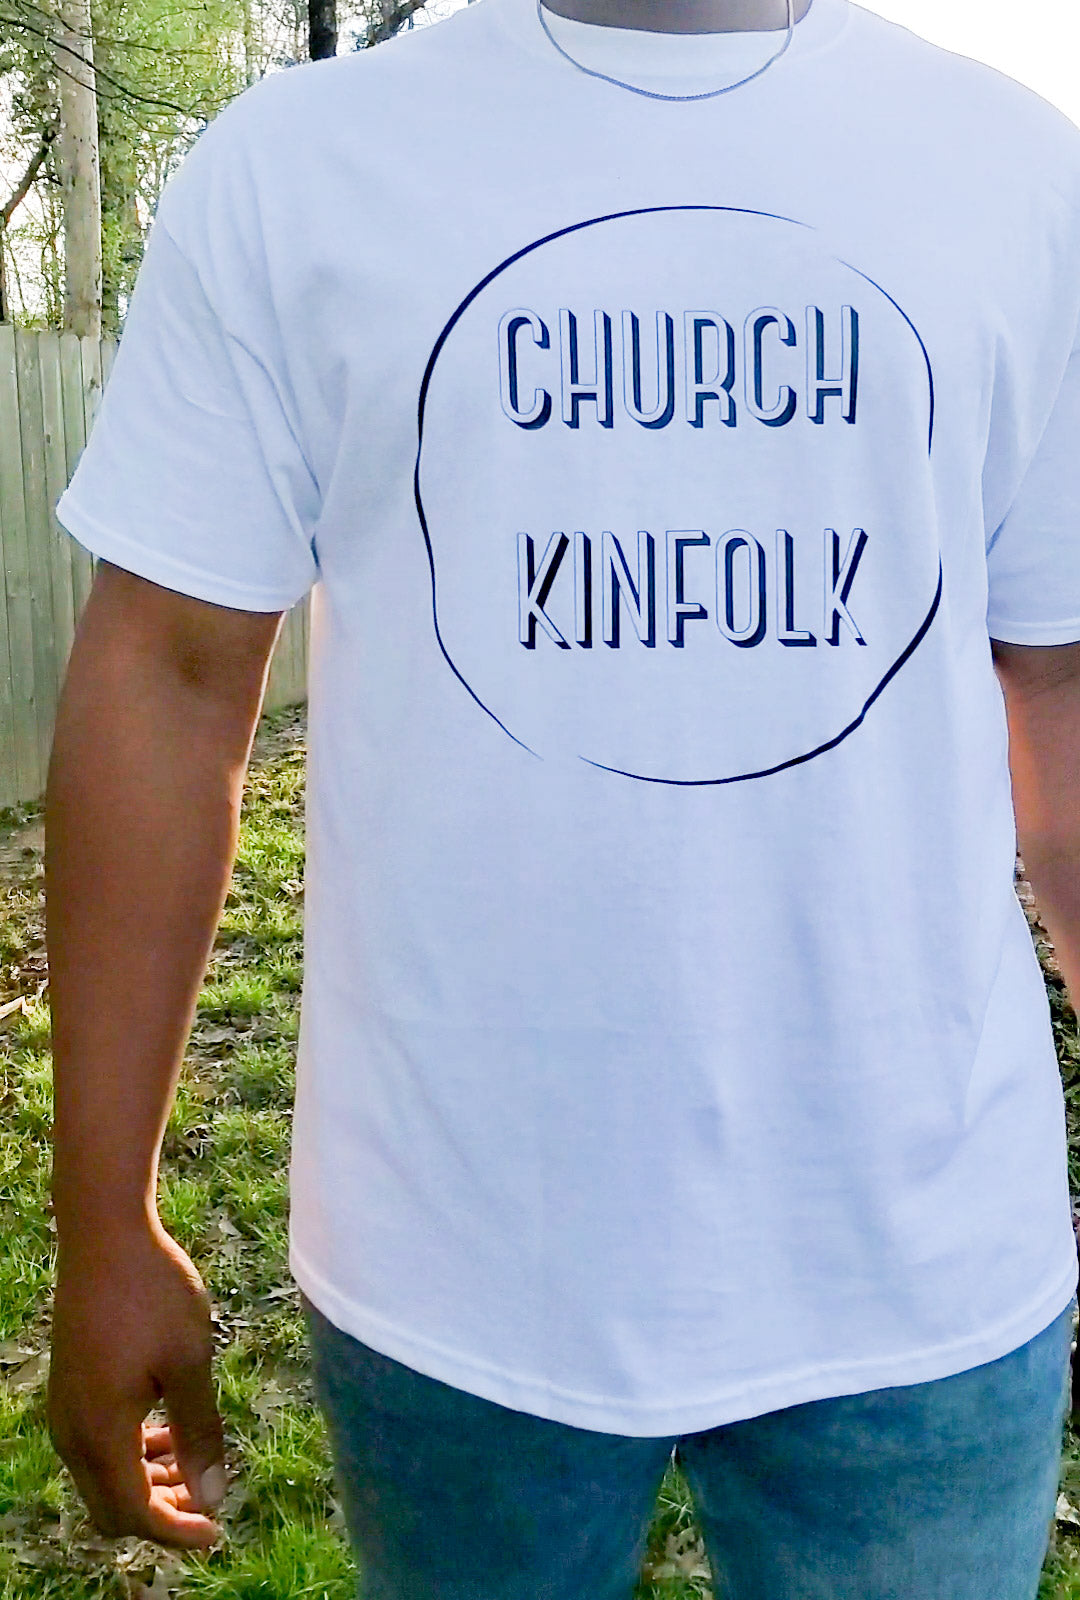 CHURCH KINFOLK T-Shirt - Recaptured Values